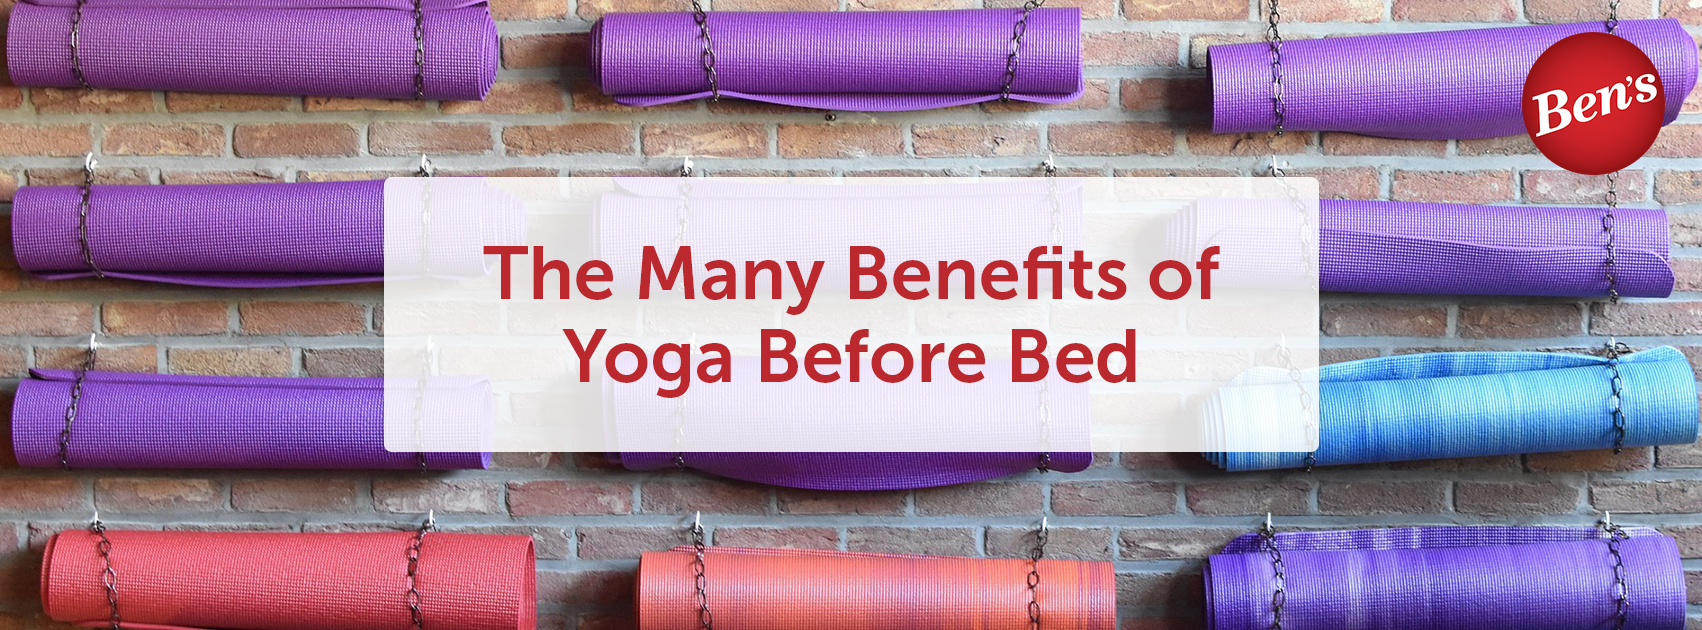 The Many Benefits of Yoga Before Bed